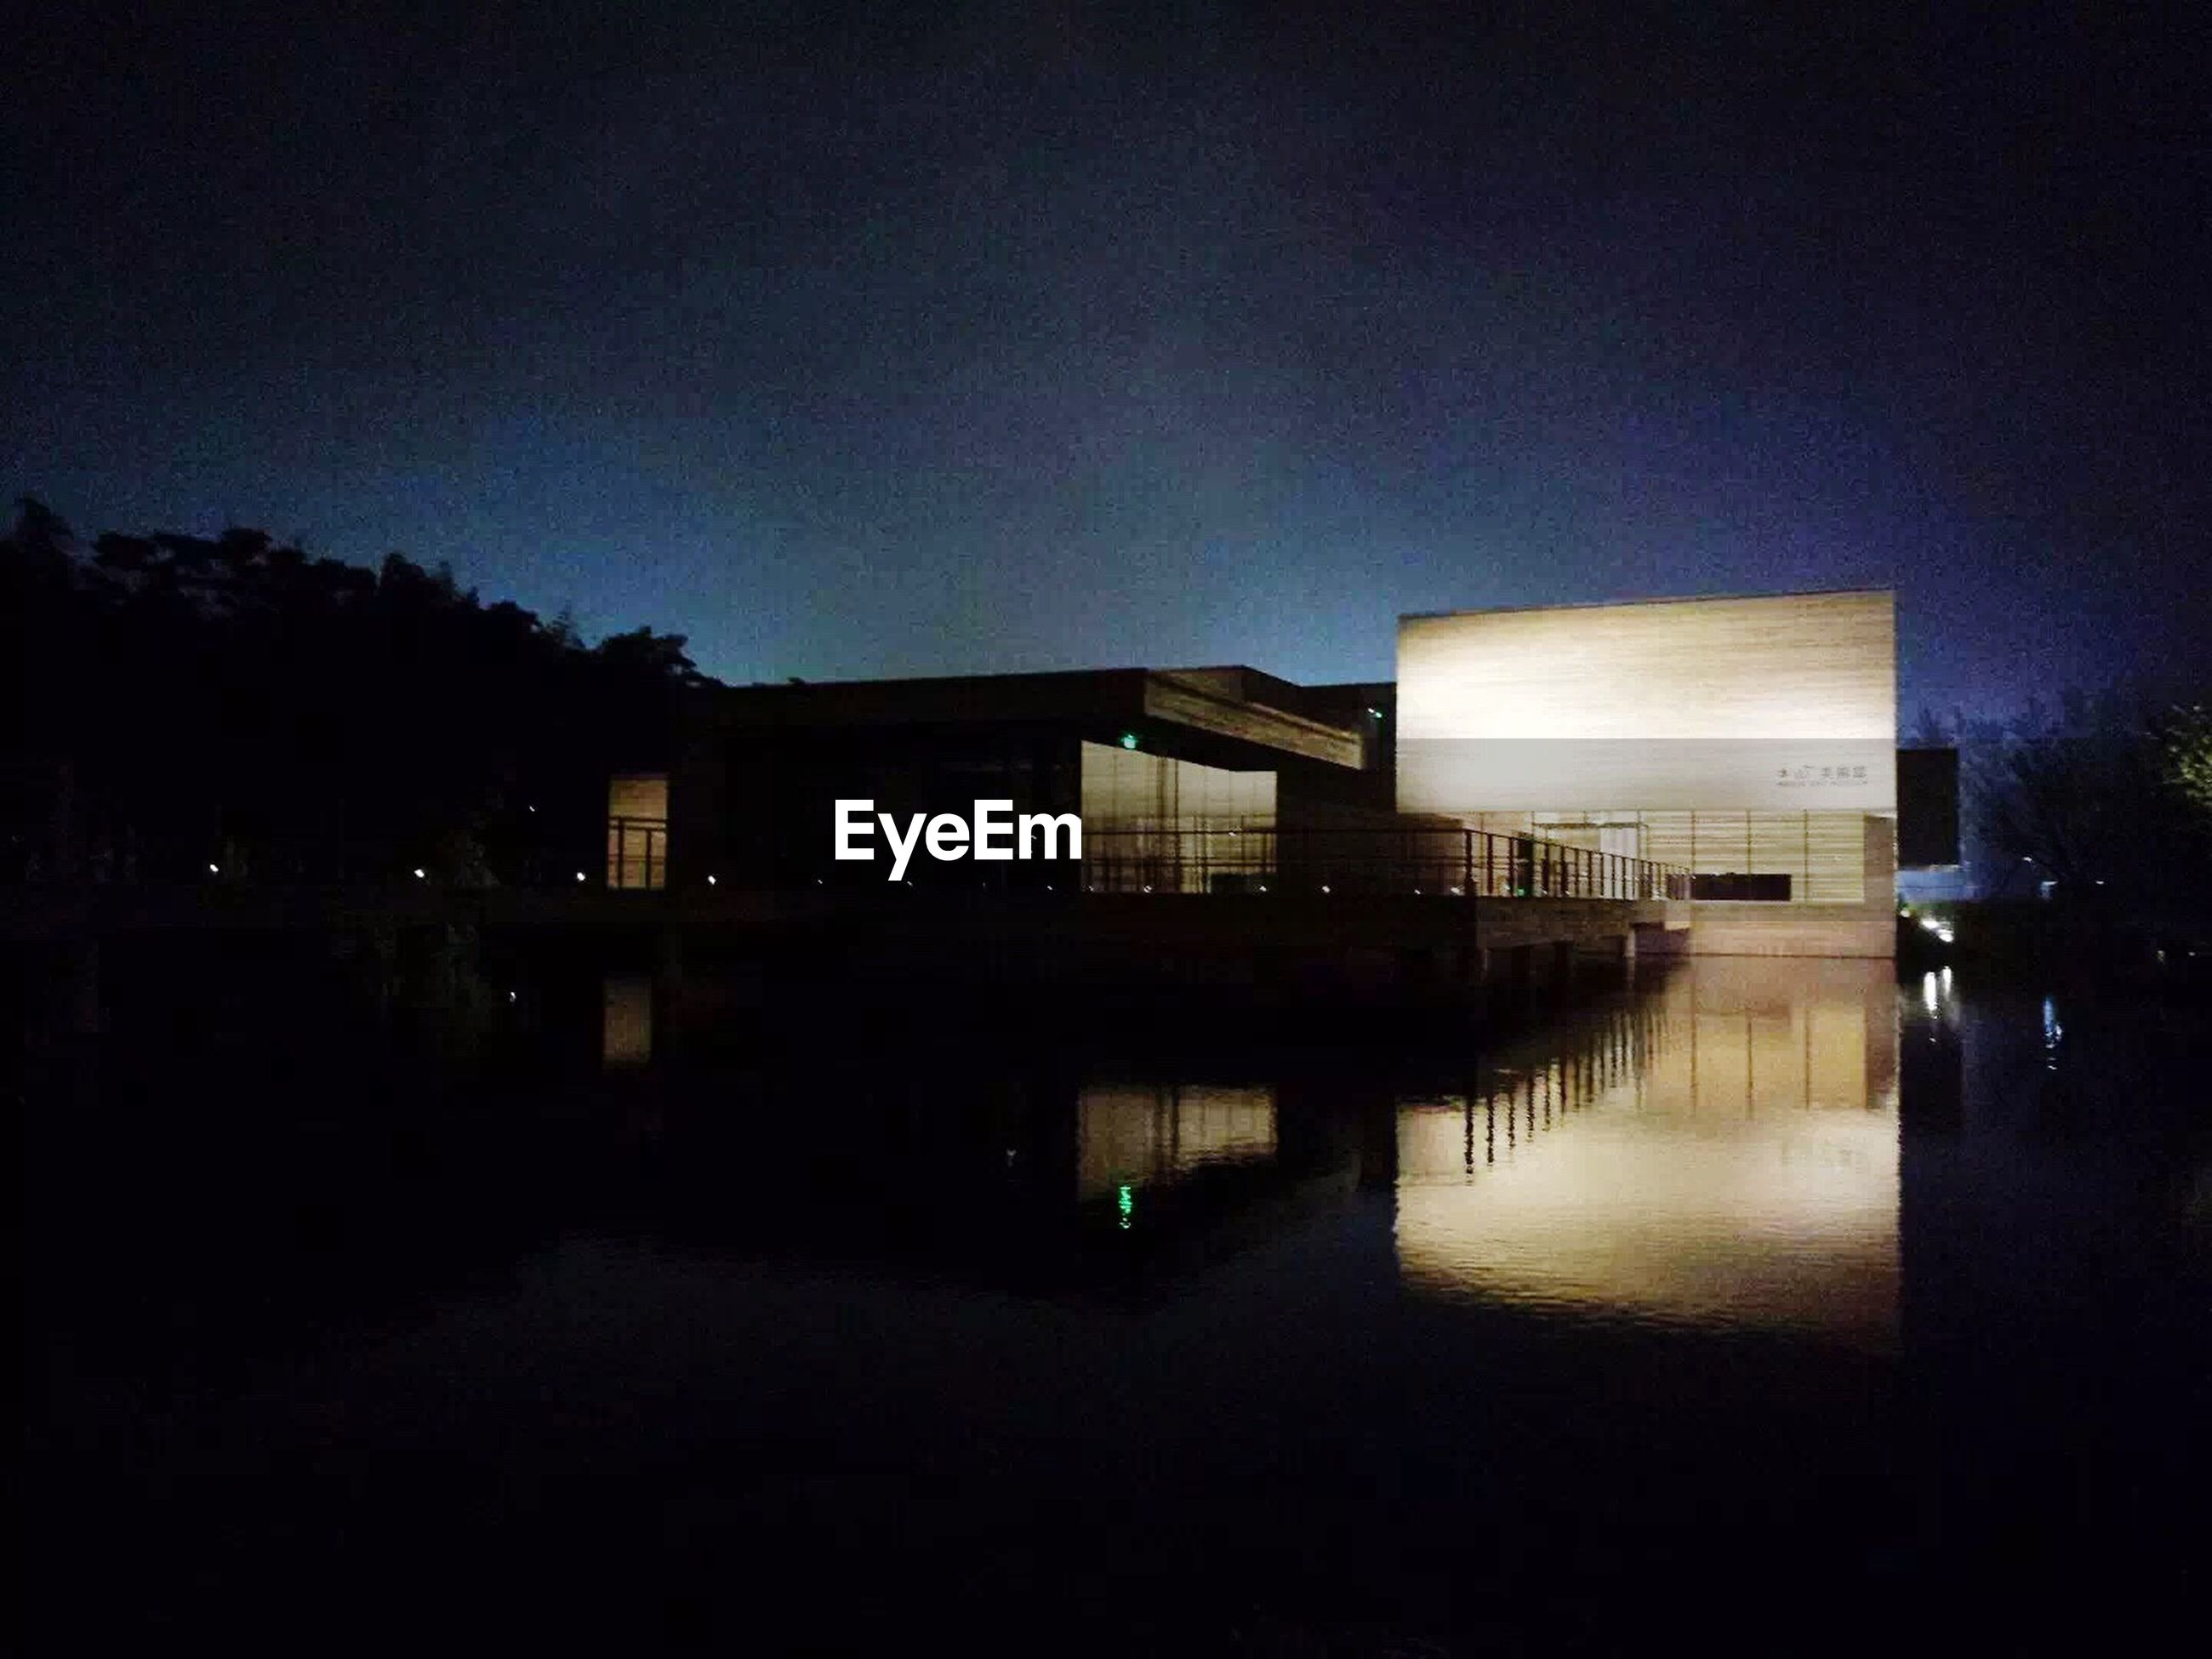 architecture, built structure, building exterior, night, water, illuminated, reflection, house, clear sky, copy space, waterfront, tree, dark, sky, lake, river, dusk, tranquility, outdoors, no people